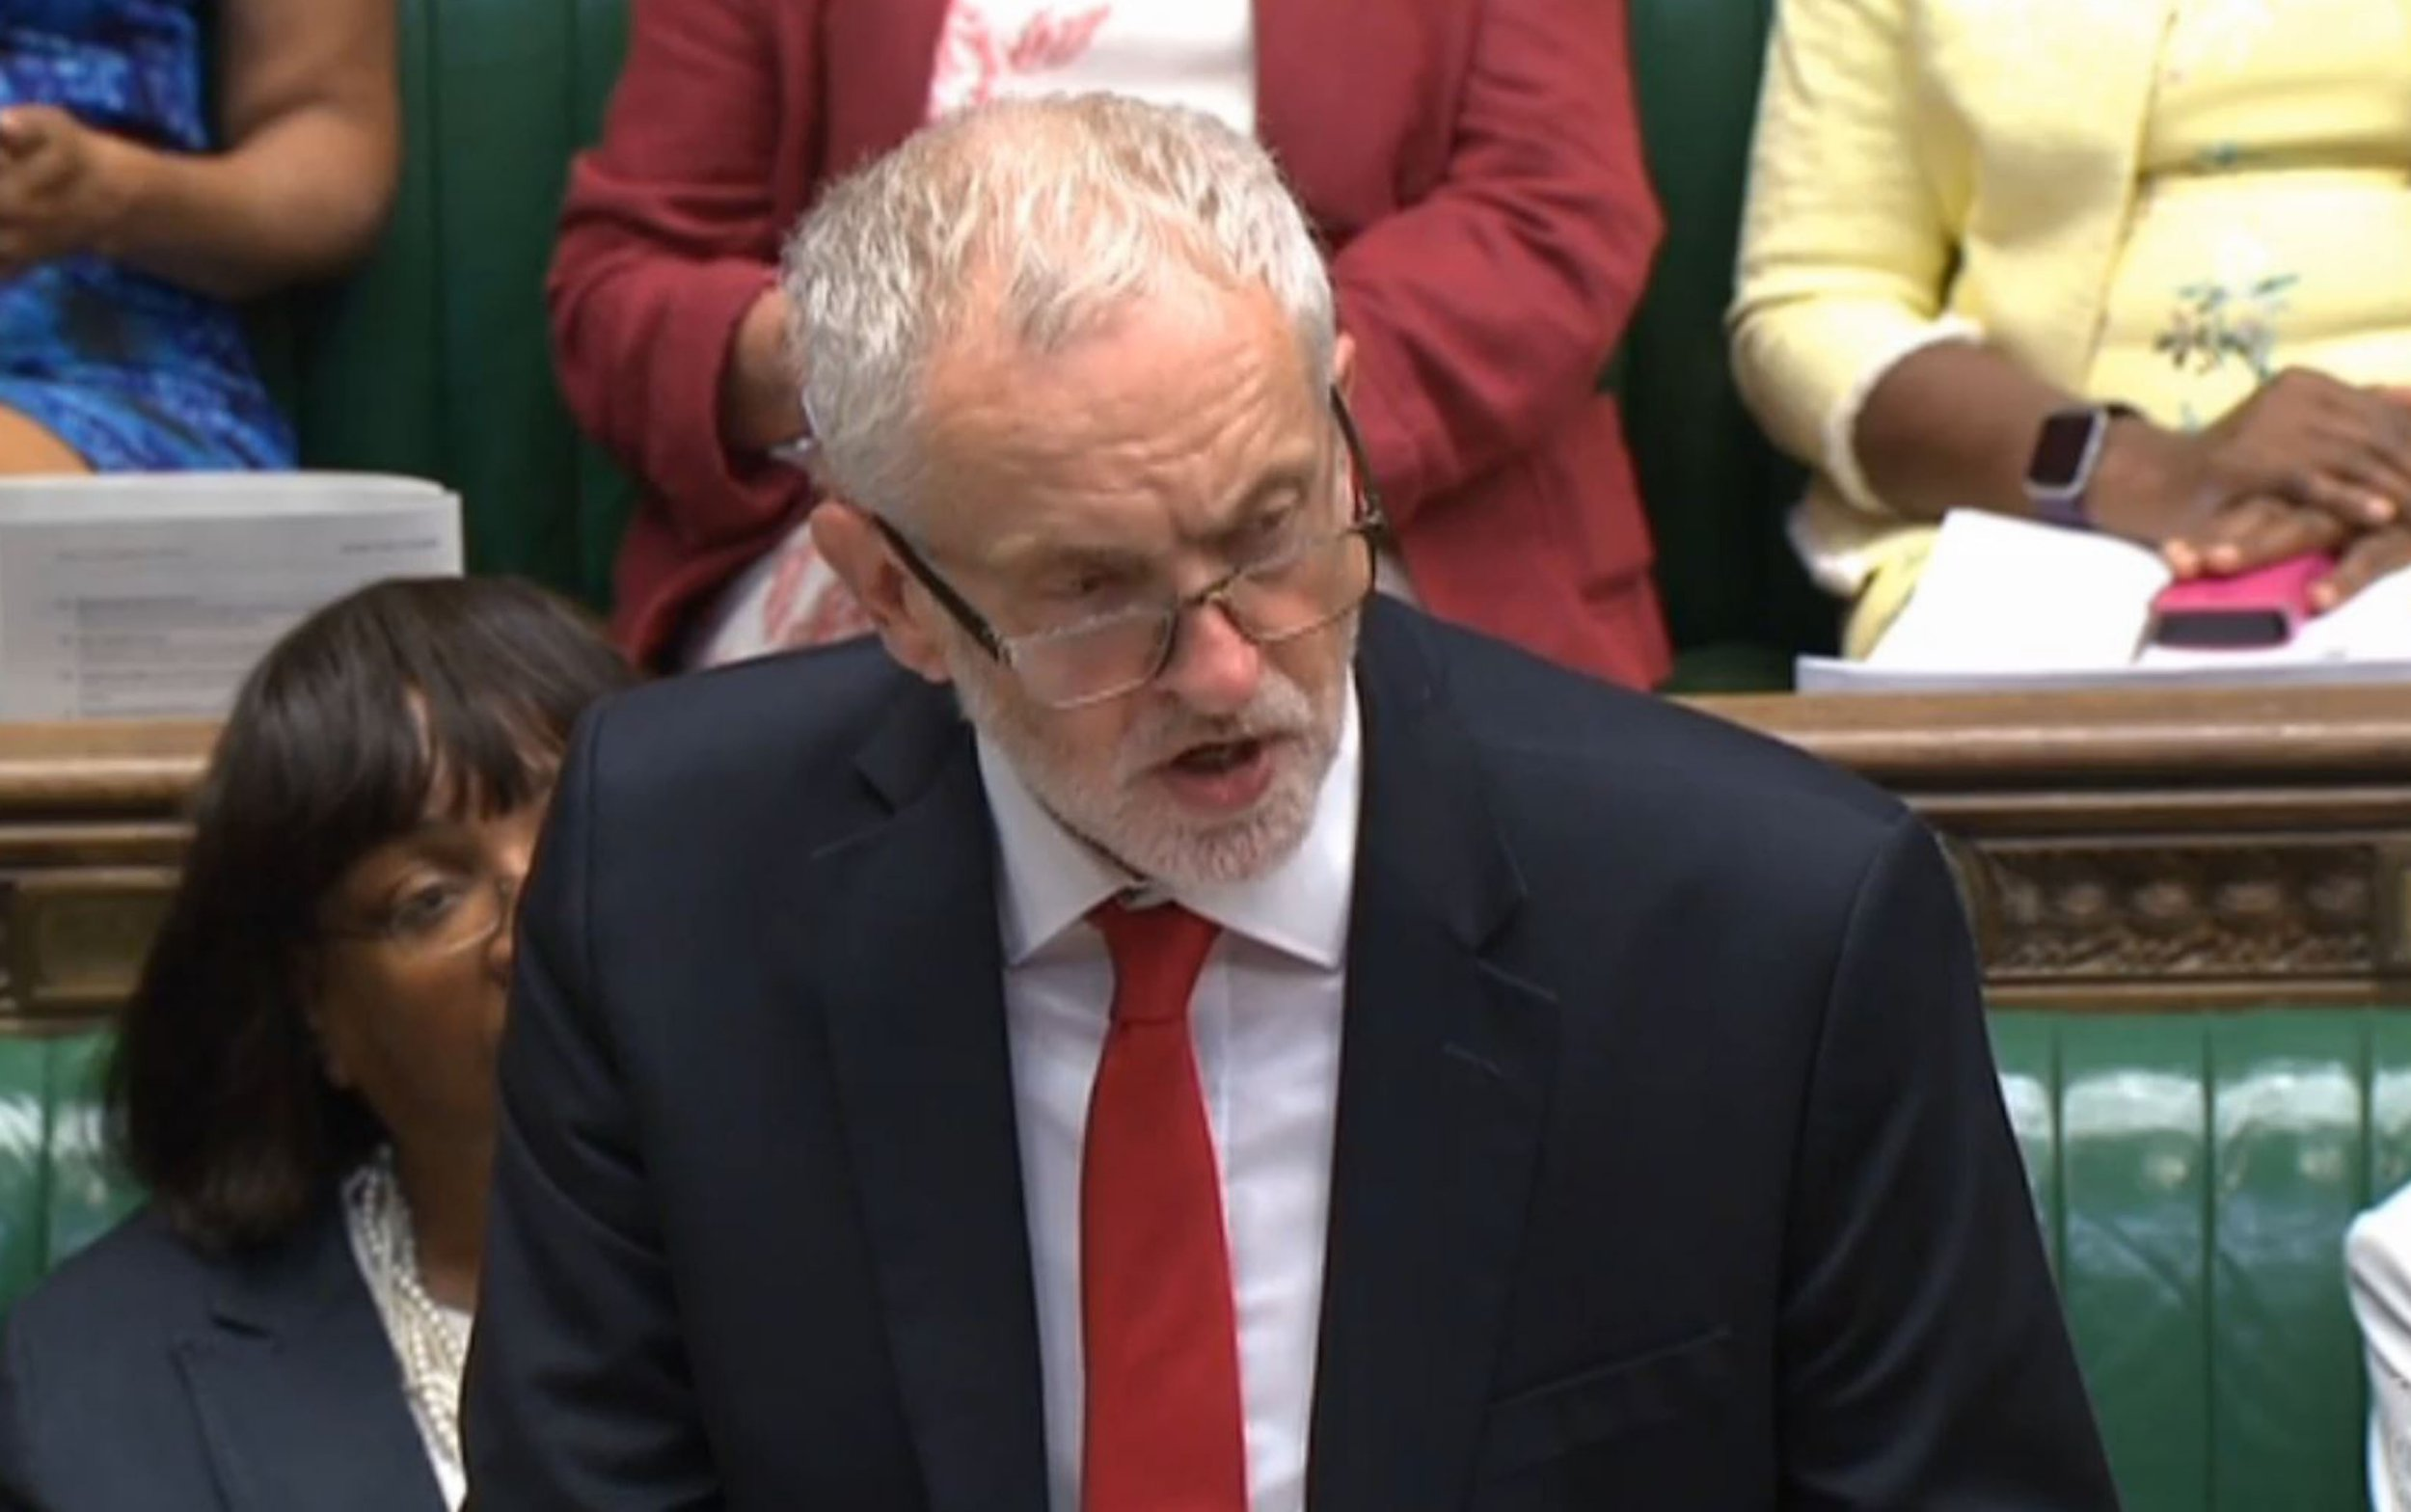 Labour leader Jeremy Corbyn speaking after Prime Minister Theresa May gave a statement on the Nato Brussels Summit 2018 in the House of Commons, London.